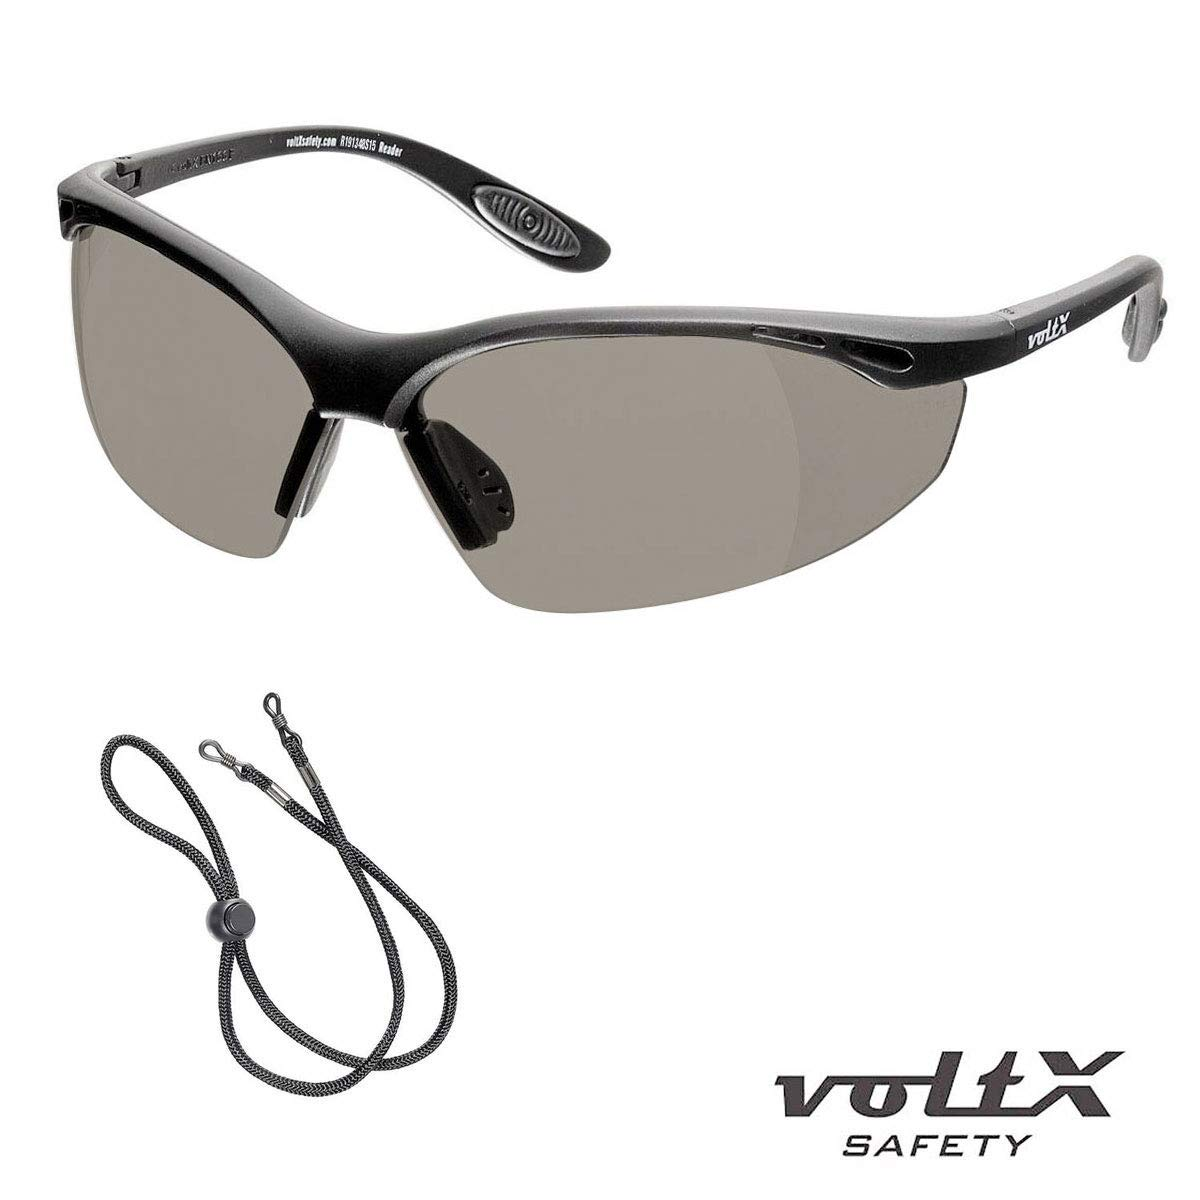 voltX Constructor SAFETY READERS Clear +1.5 Dioptre Wraparound Style Includes Safety Cord with headstop Full Lens Reading Safety Glasses CE EN166f certified